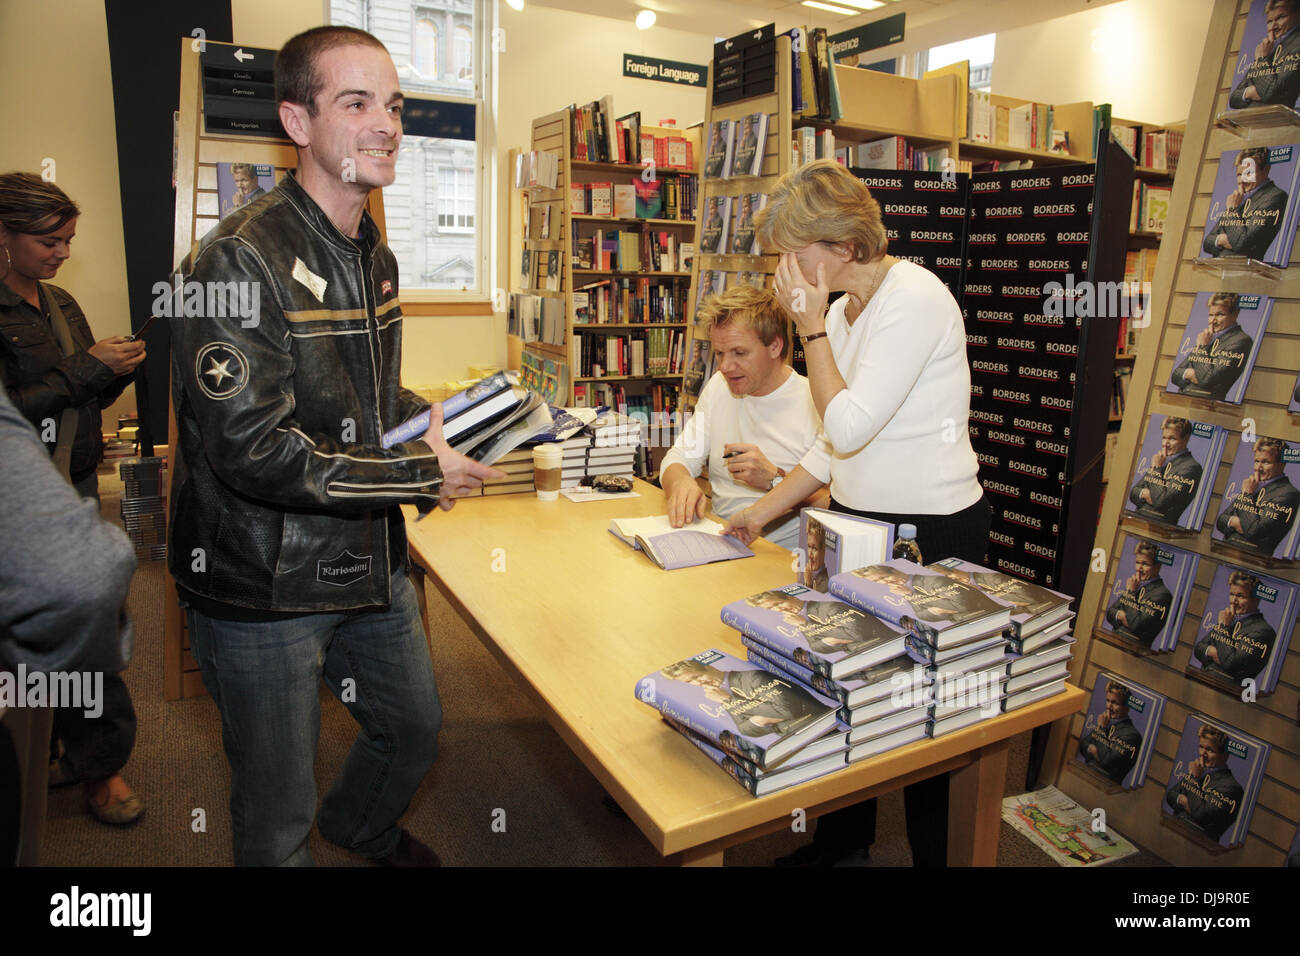 CELEBRITY BOOK SIGNINGS 2017 - YouTube